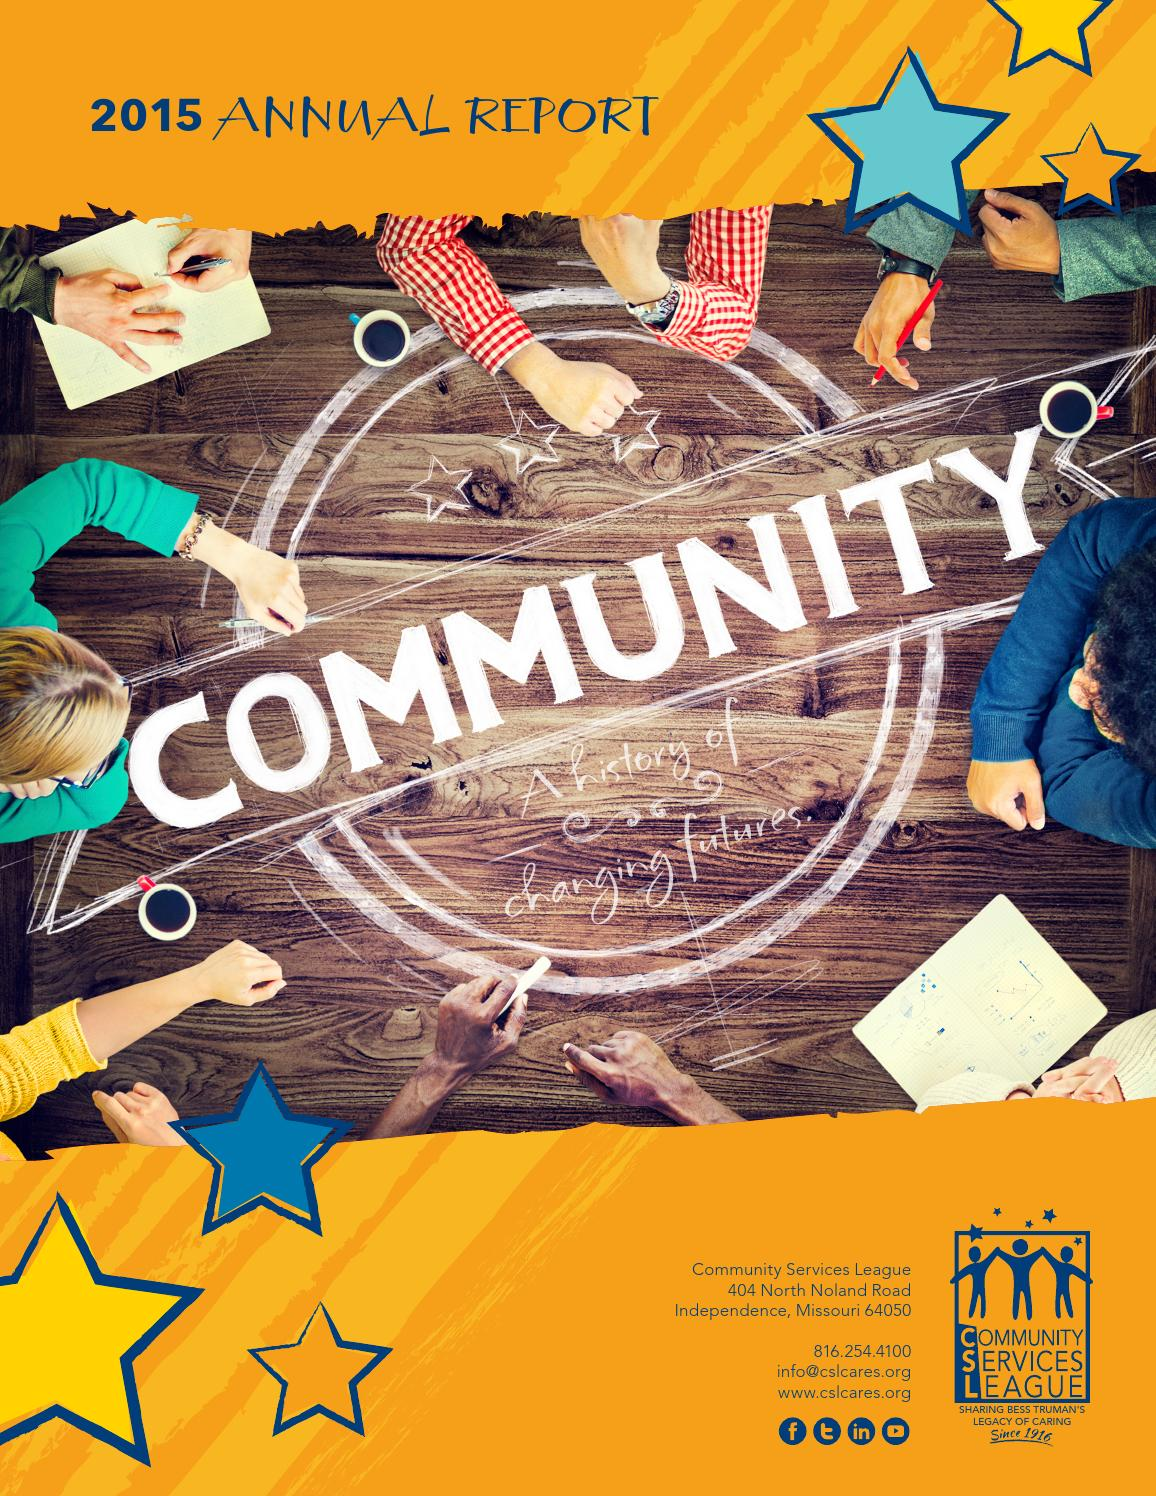 community services league 2015 annual report by ccp123 issuu